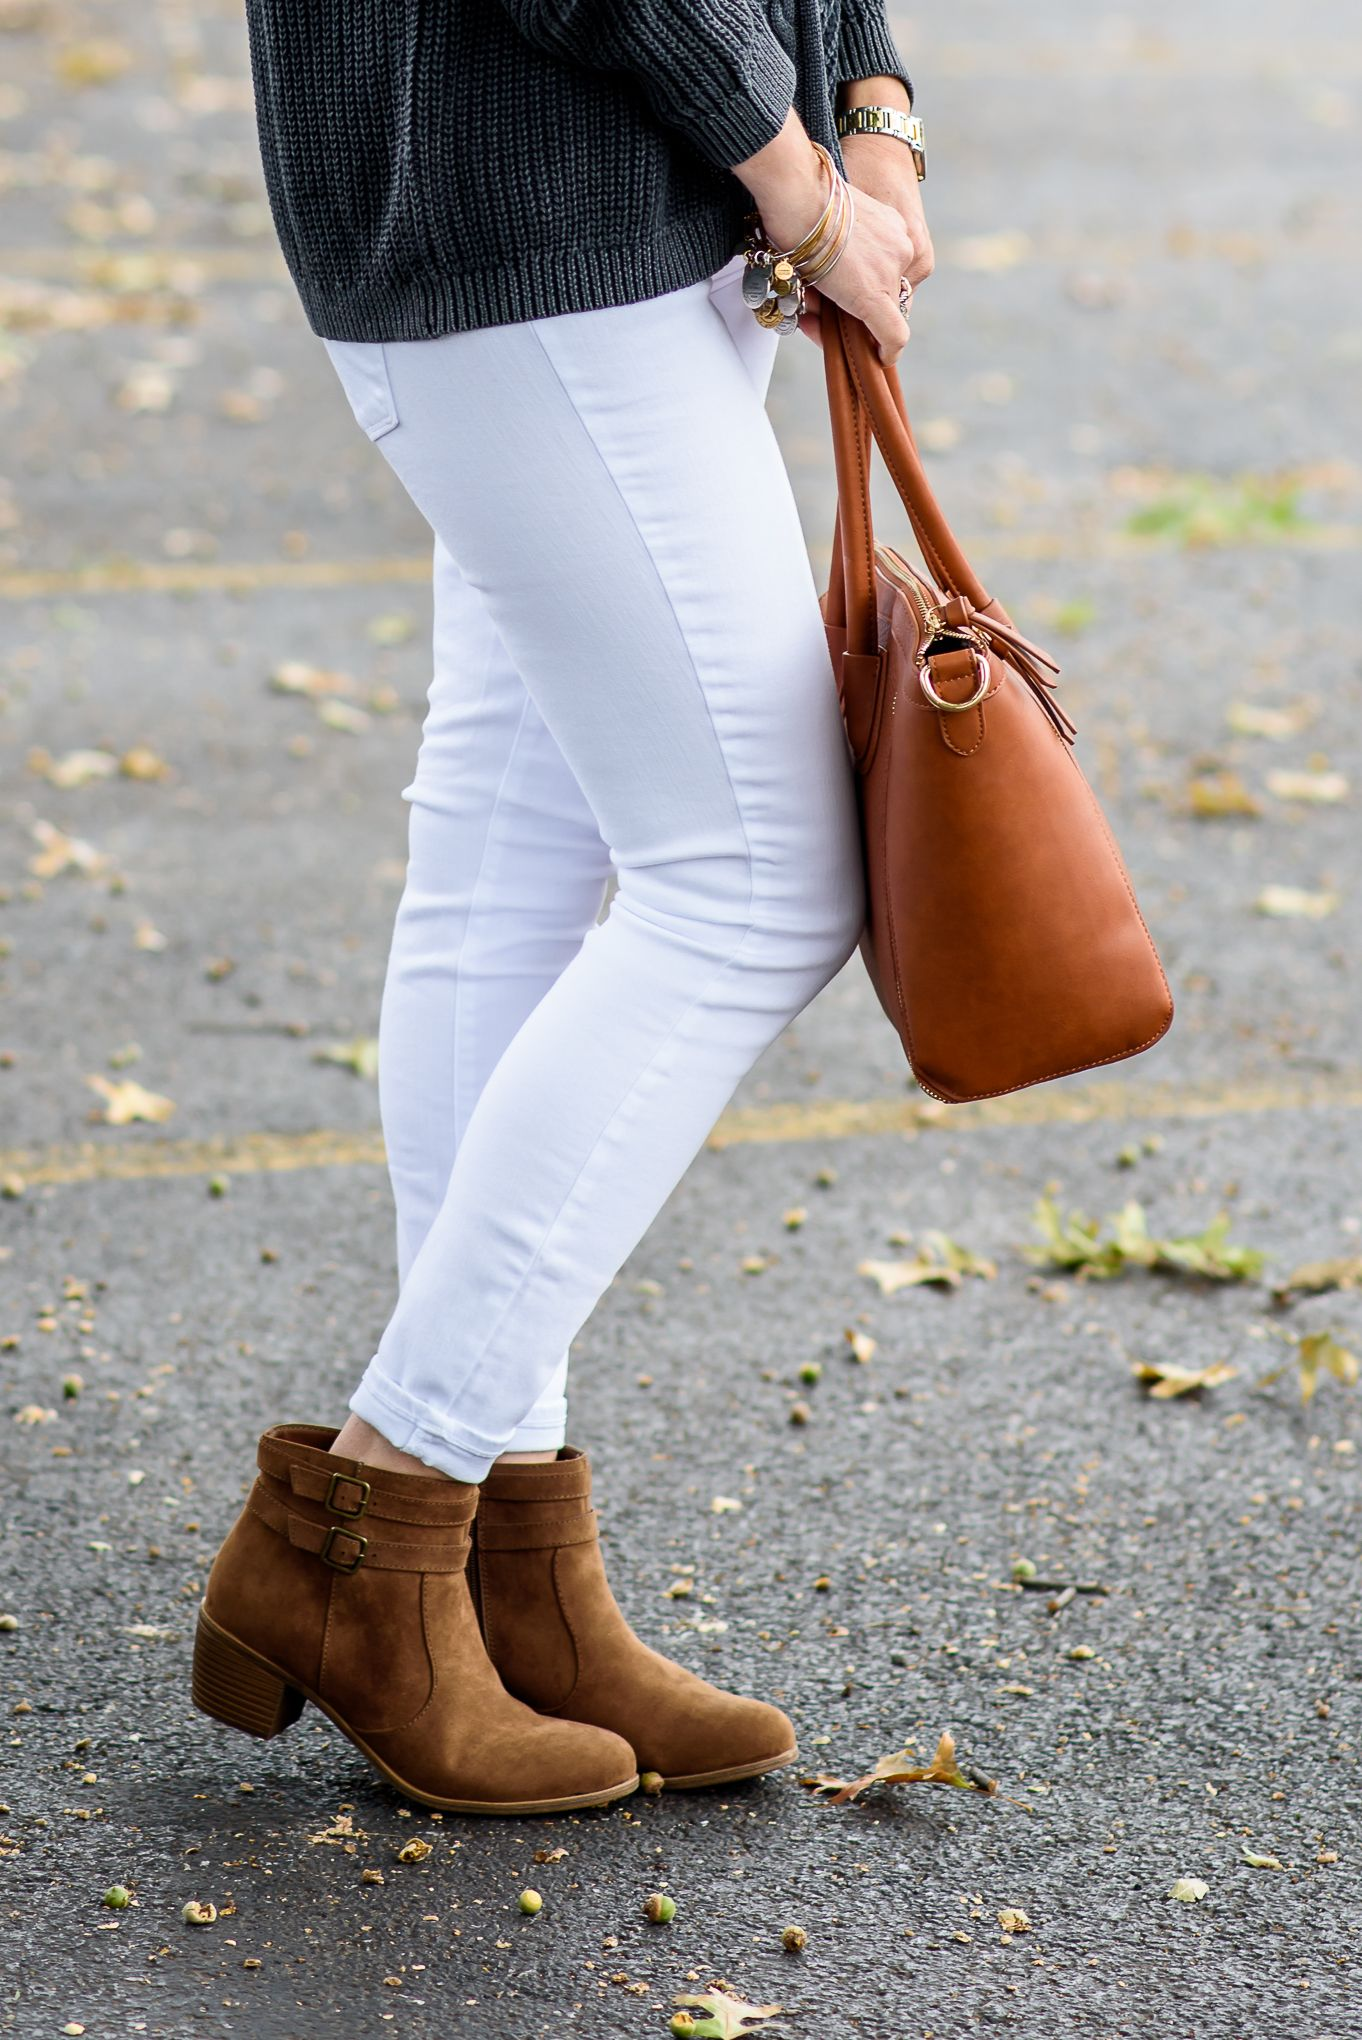 How to wear ankle boots cropped skinny jeans ankle